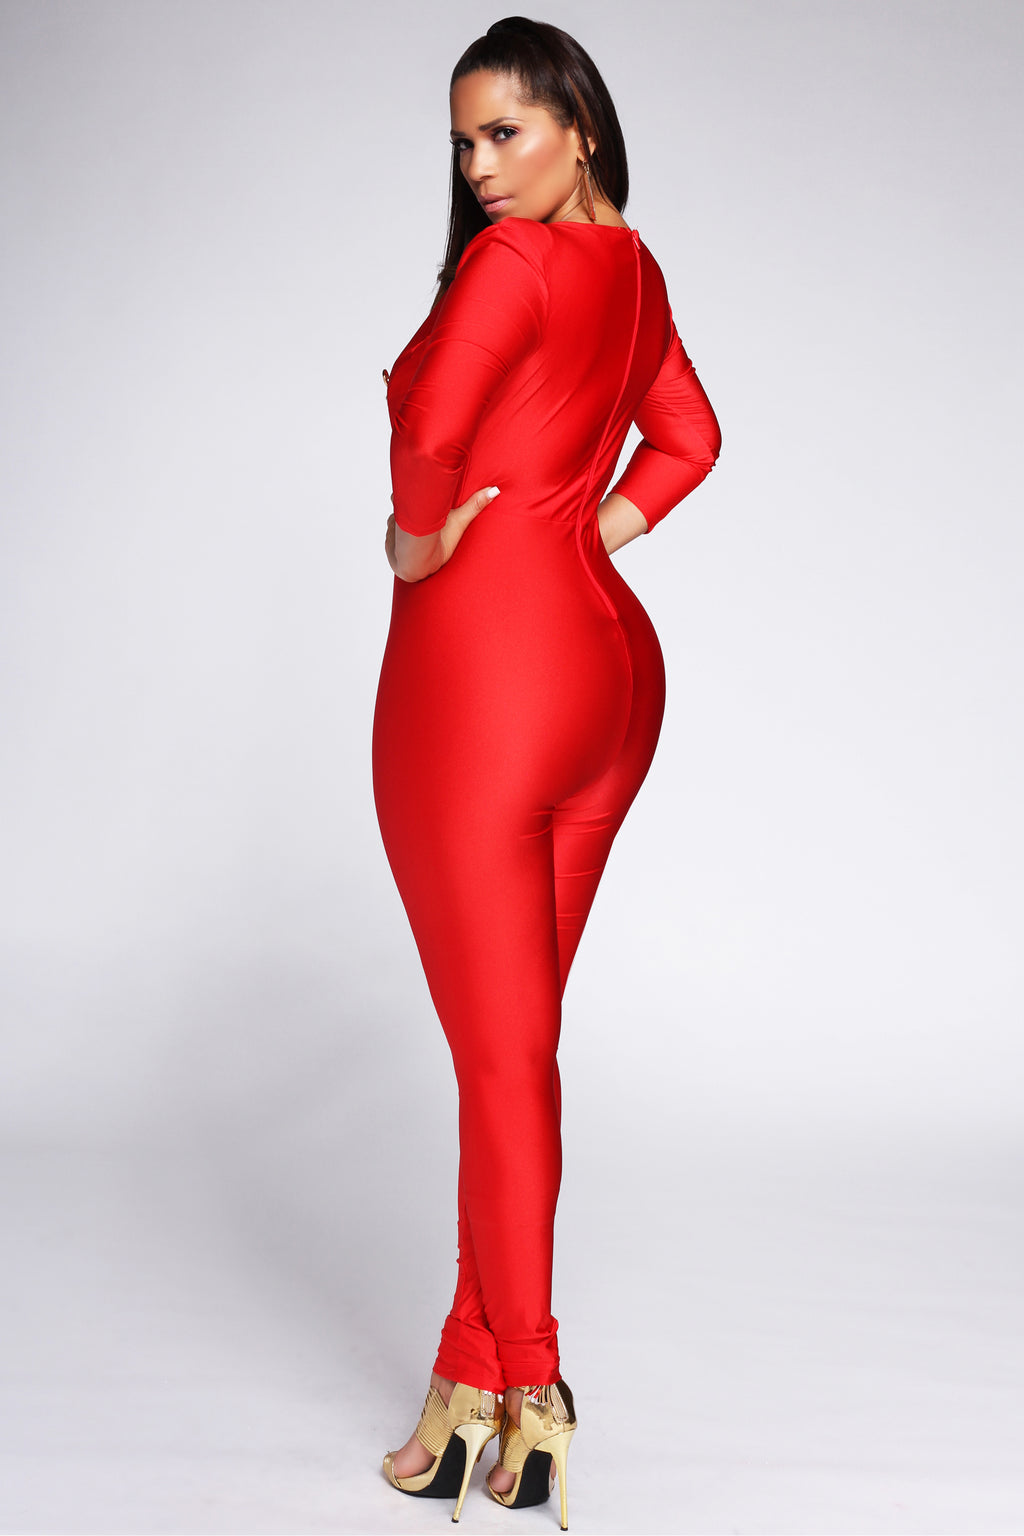 Caterina V Neck 3/4 Sleeves Bodycon Jumpsuit in Red - MY SEXY STYLES